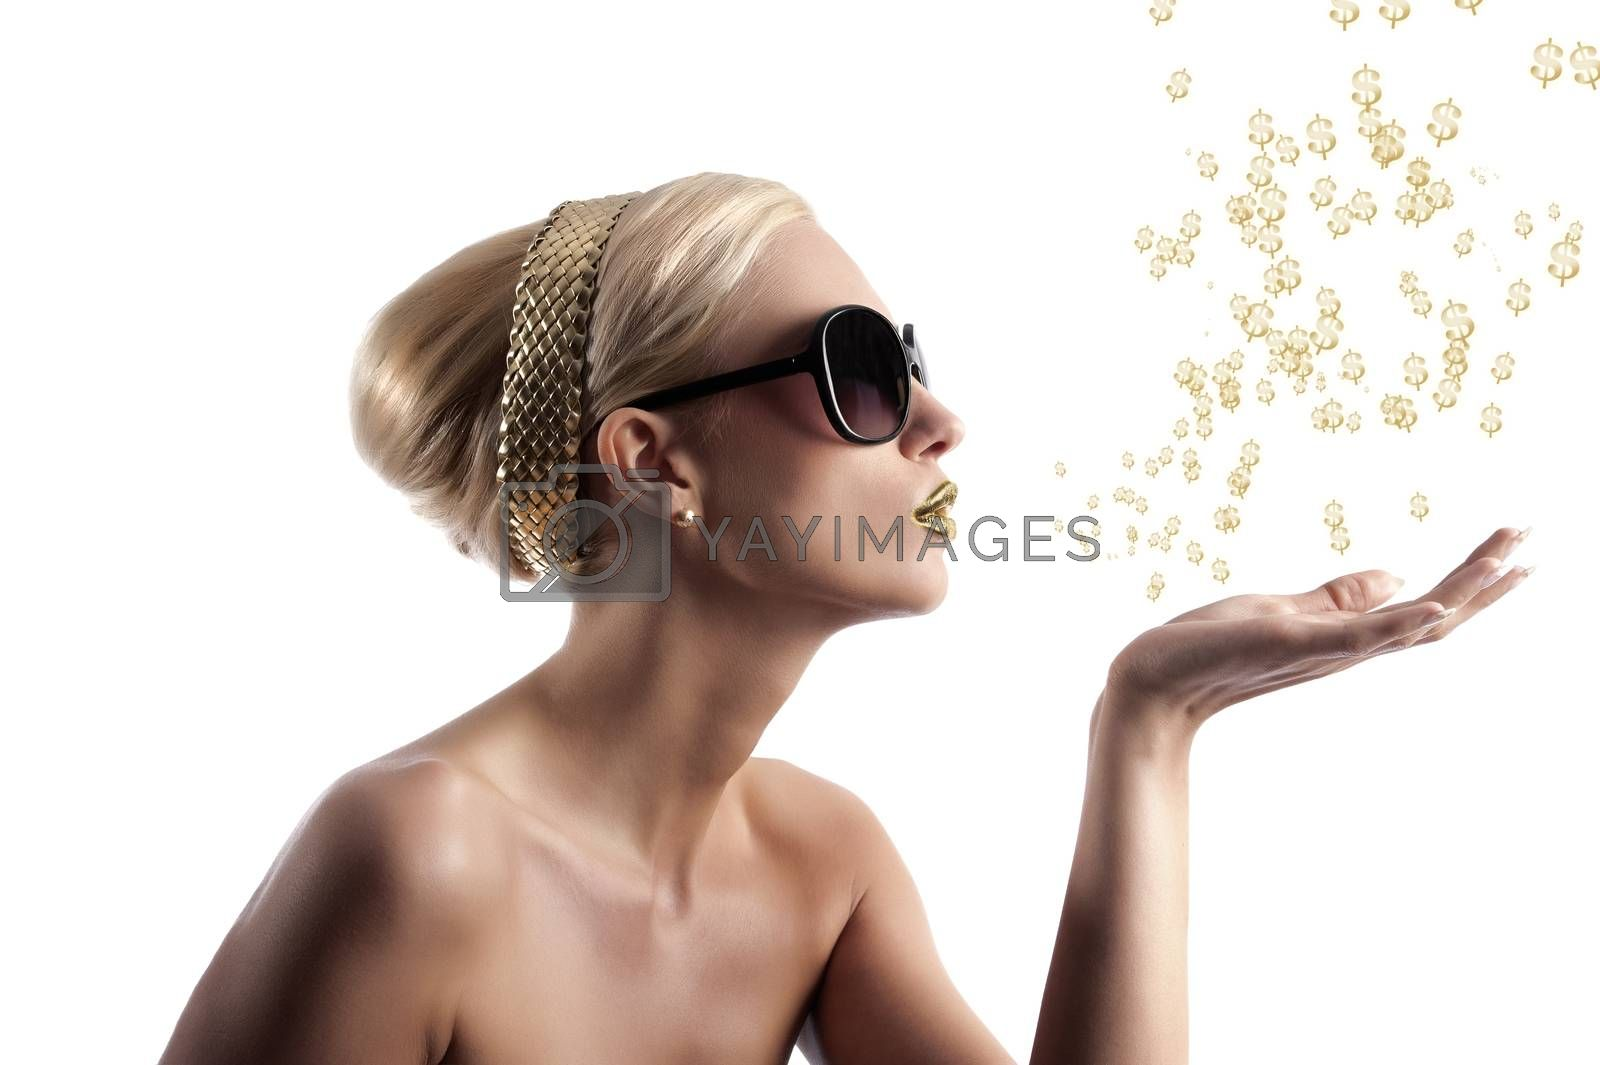 Royalty free image of golden lips girl blowing by fotoCD